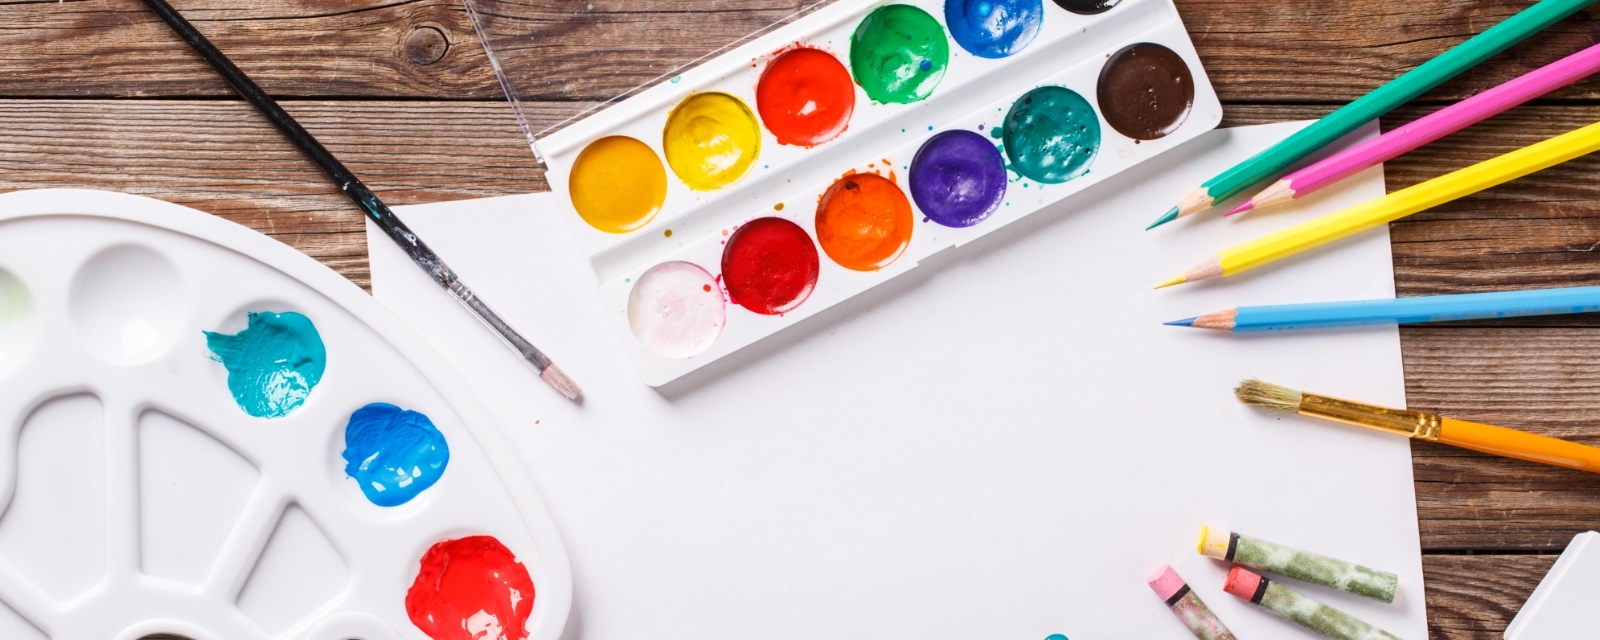 art artists palette, paint brushes and paint with a blank piece of paper